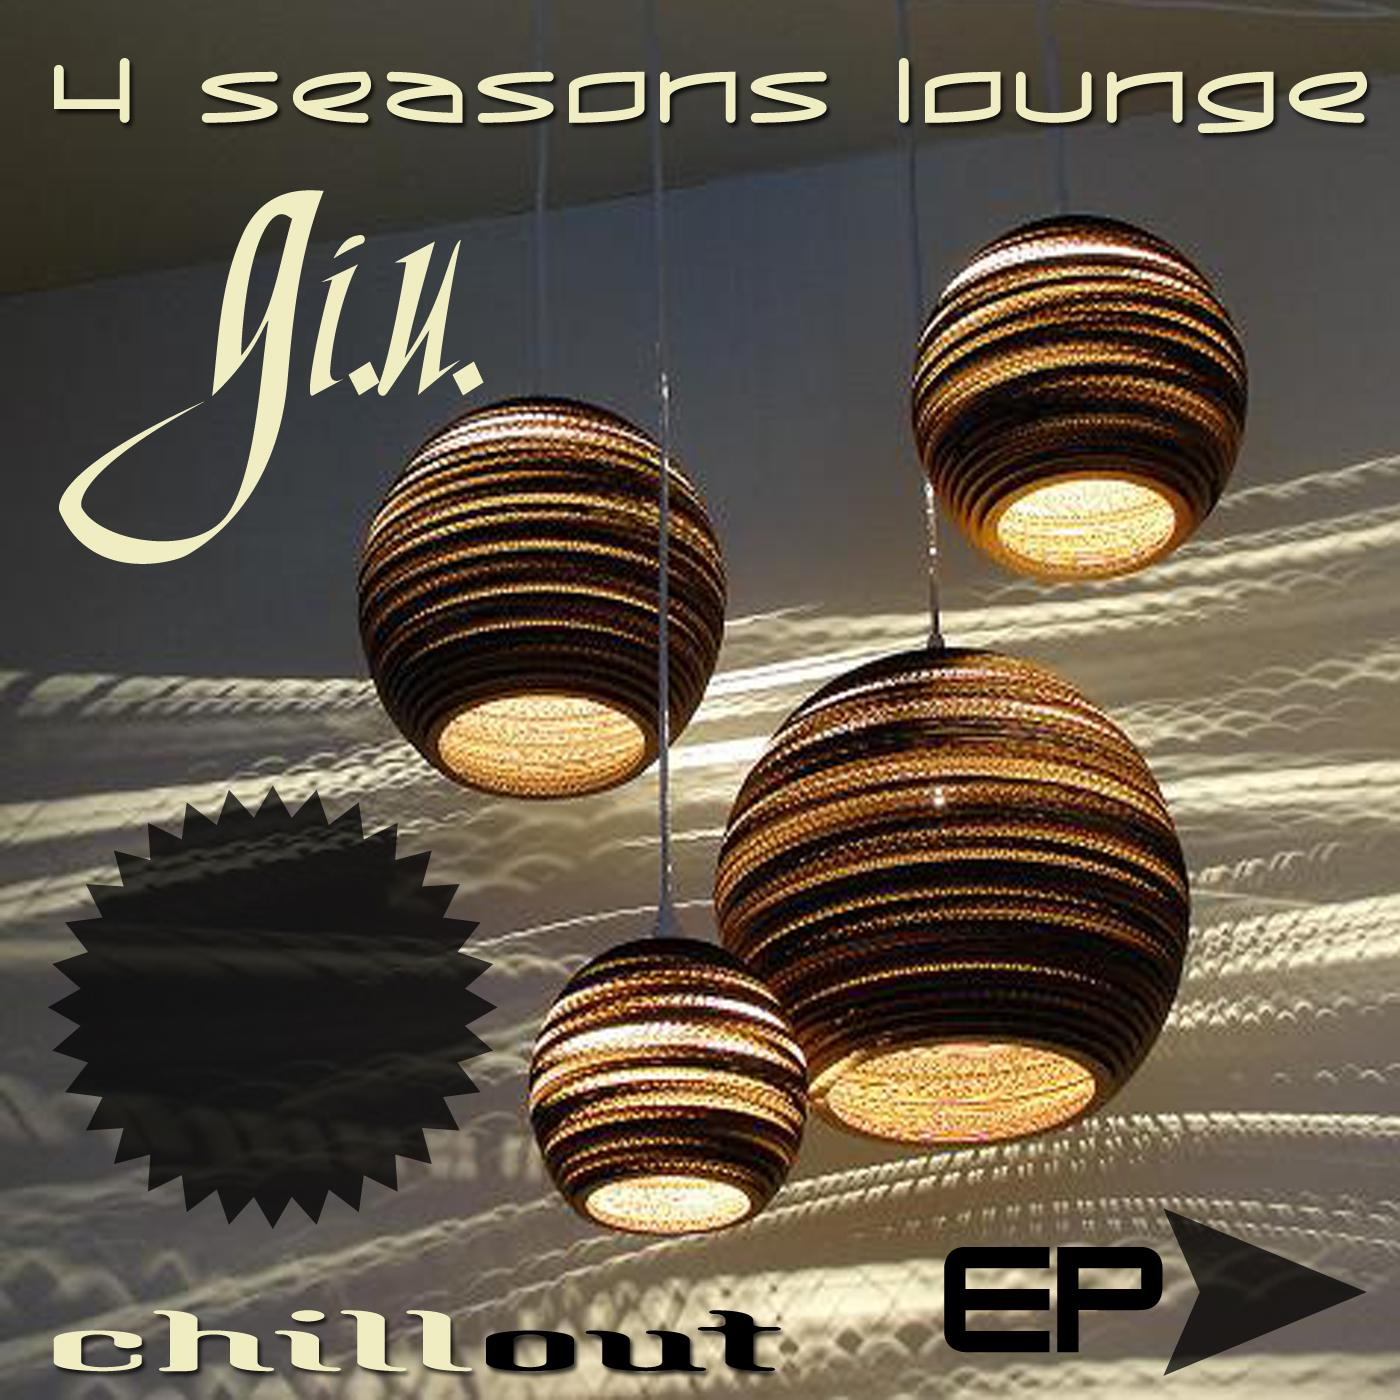 4 Seasons Lounge - EP